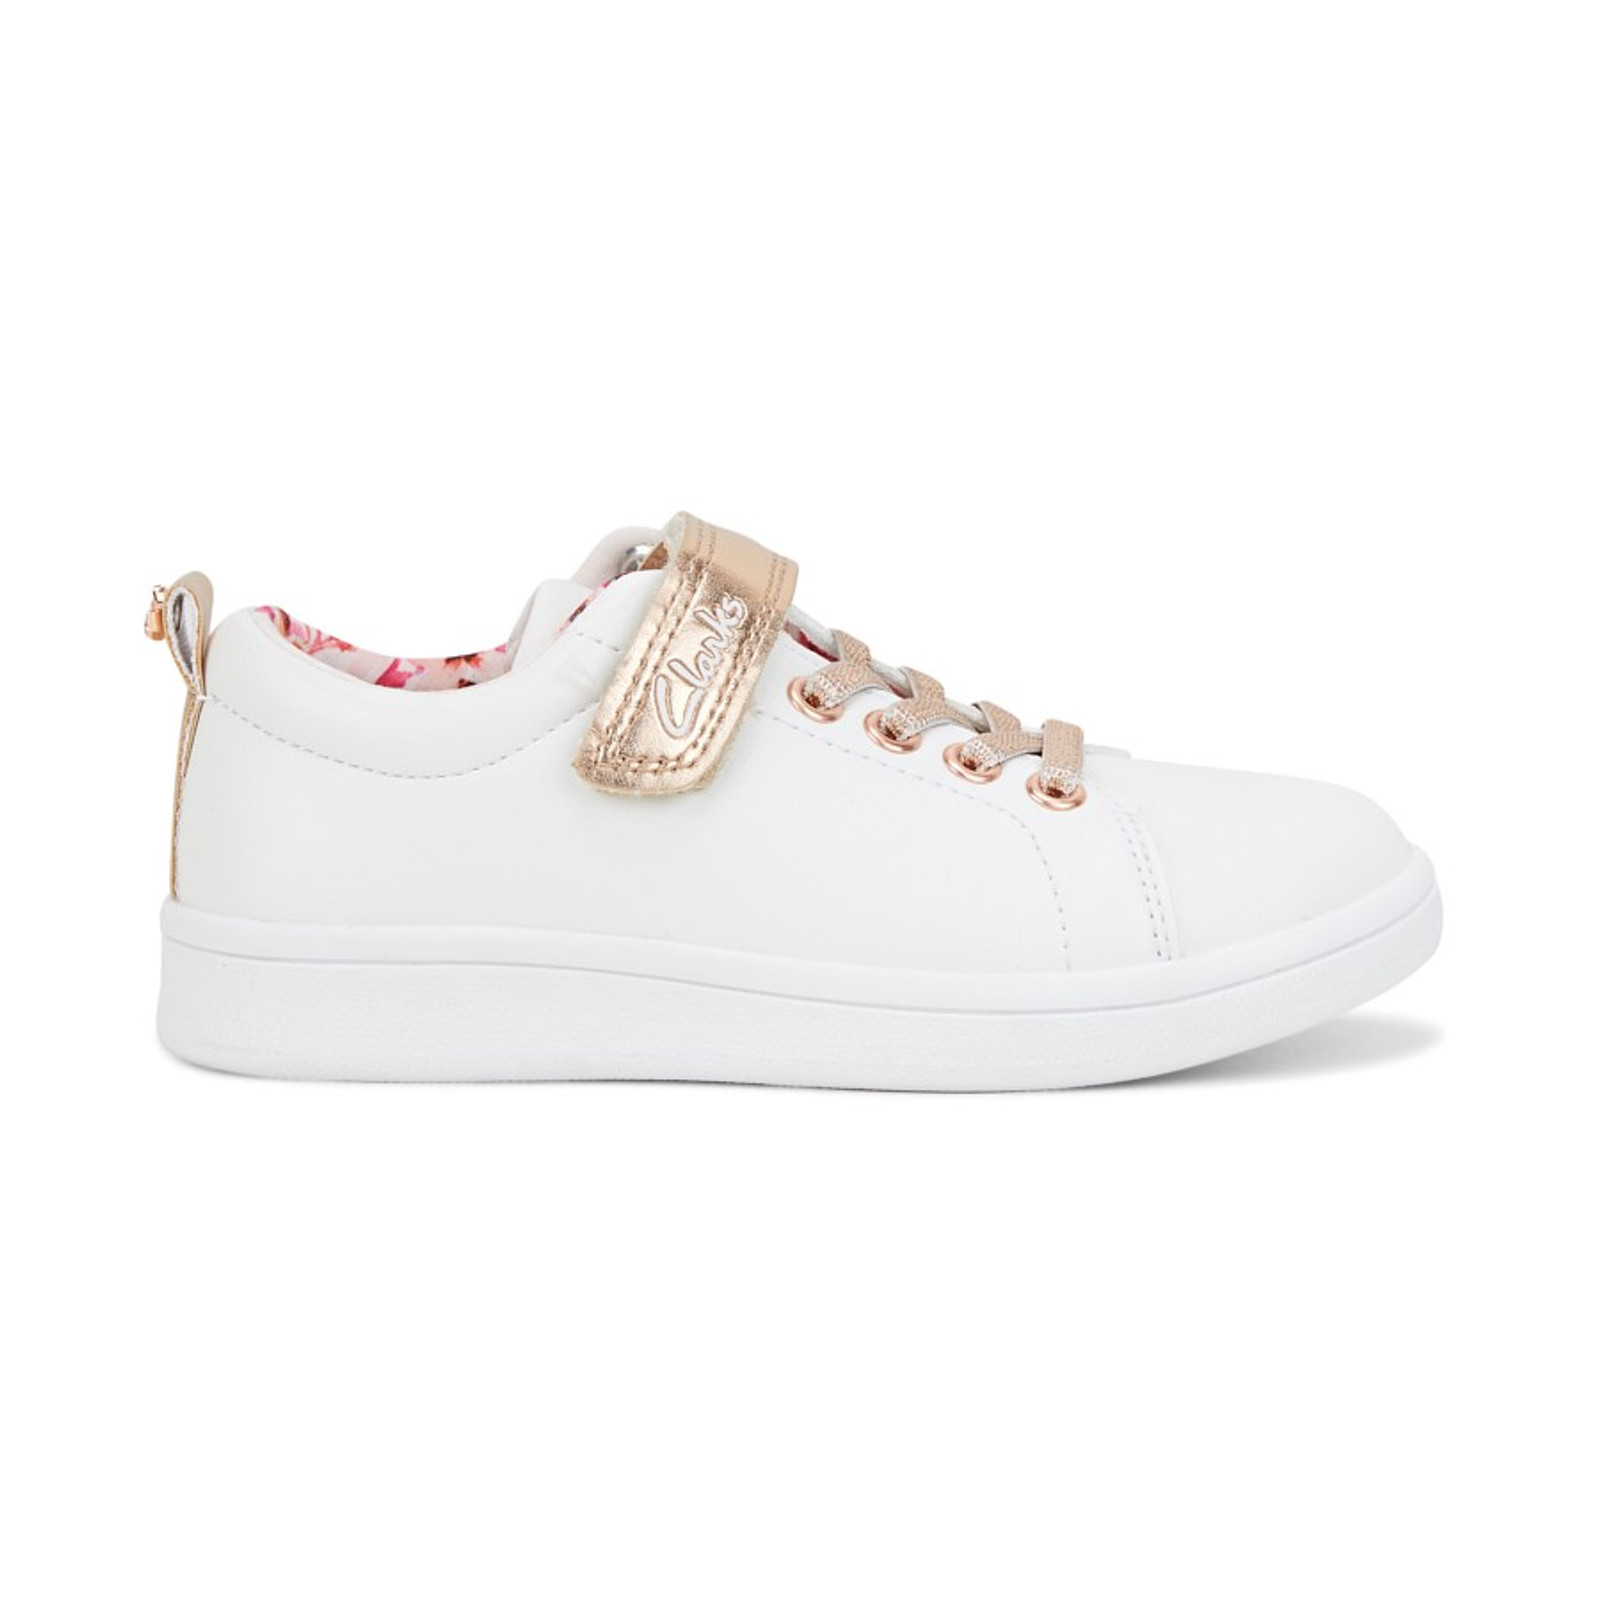 Duffy Jnr White/Rose Gold By Clarks